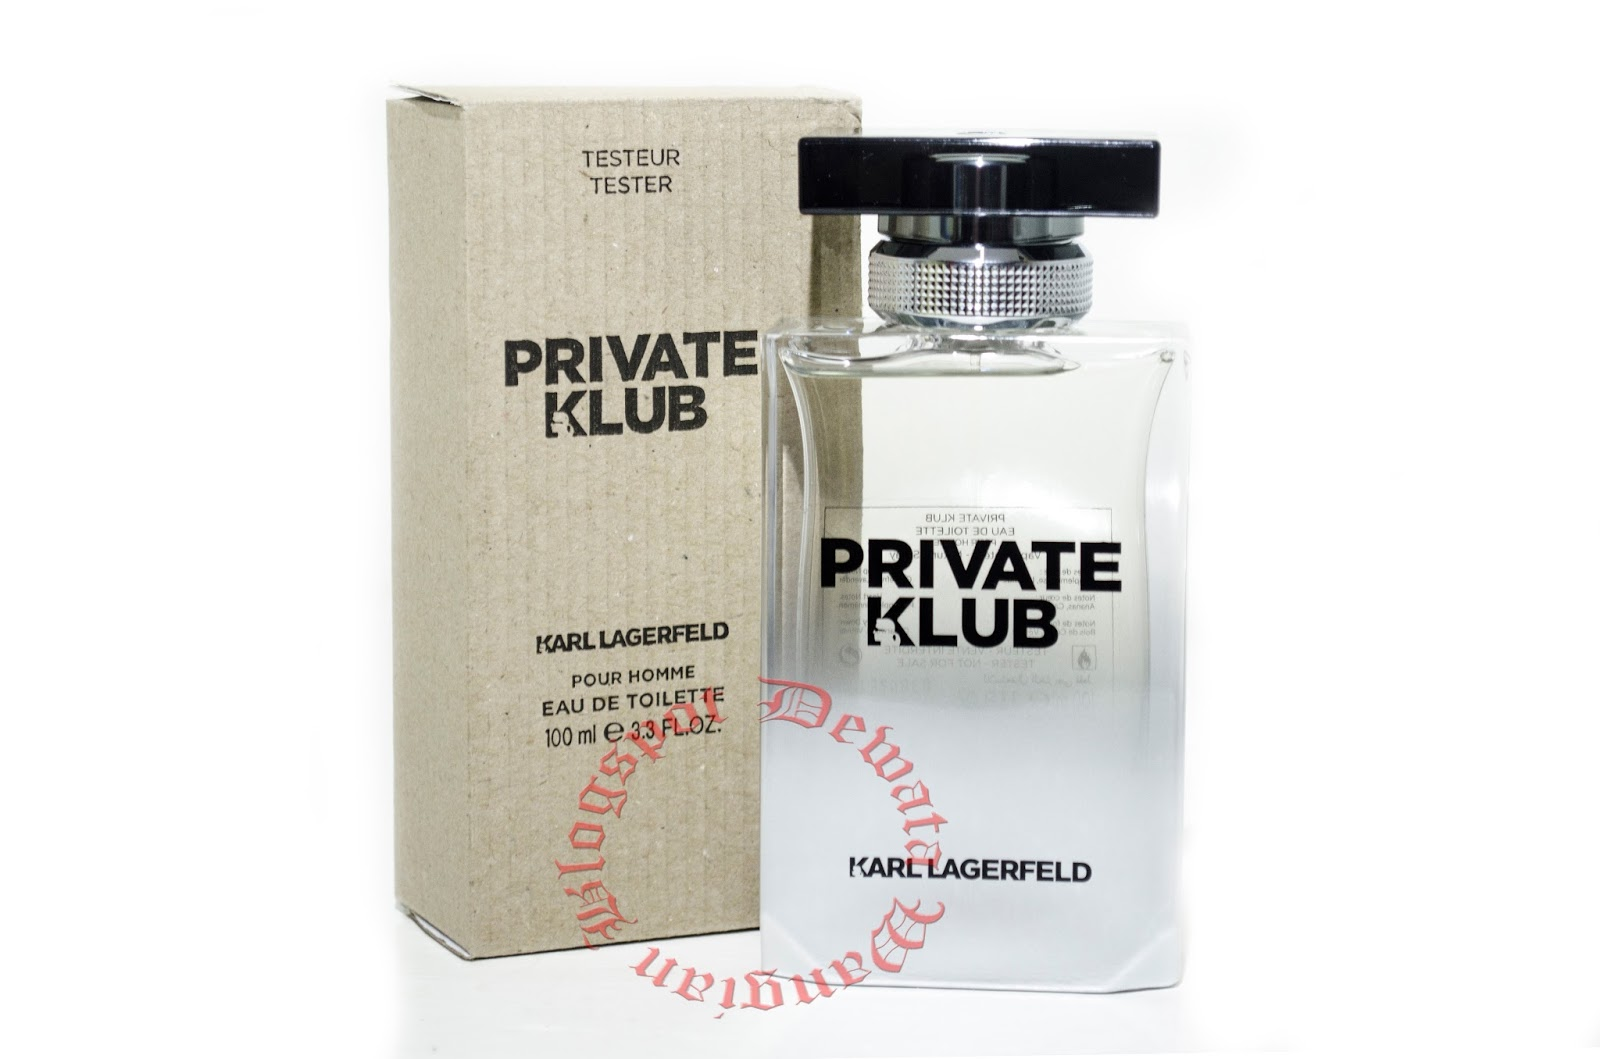 Wangian Original TerbaikKarl Private Cosmetic Lagerfeld perfumeamp; FT31JuKcl